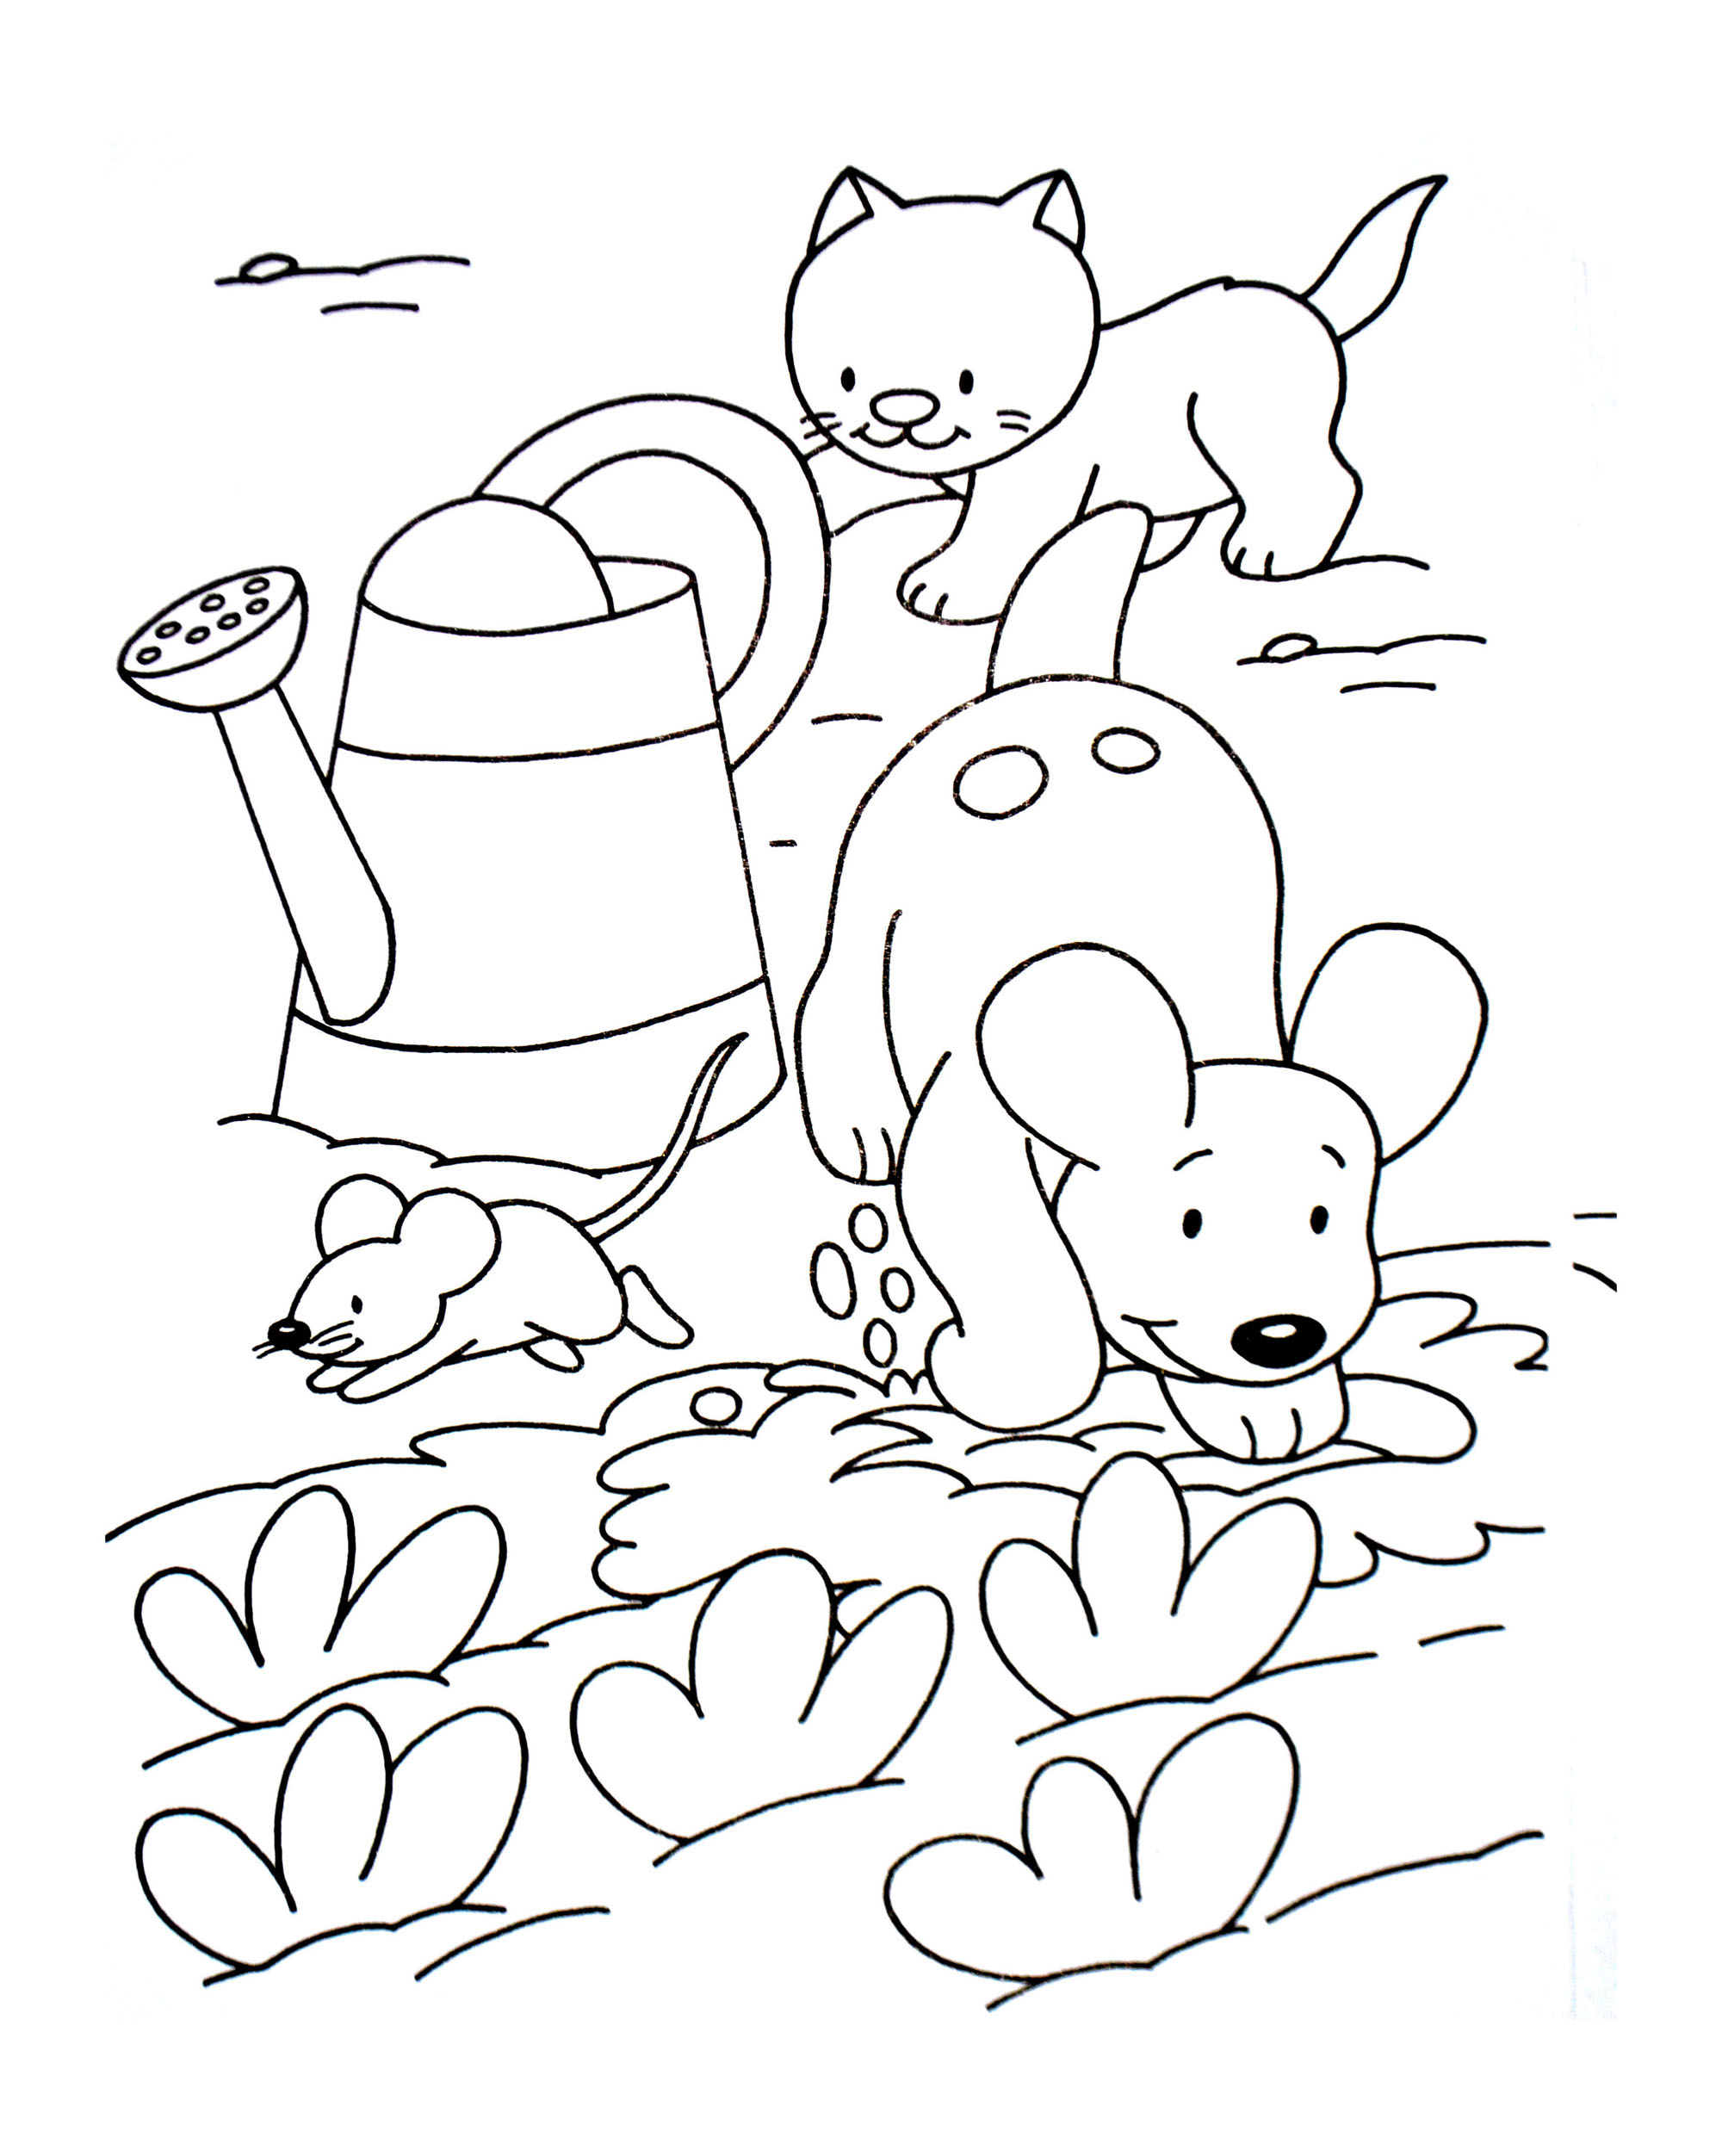 - Dog And Cat Coloring Pages Dog Cat And Mouse Animal Coloring Pages